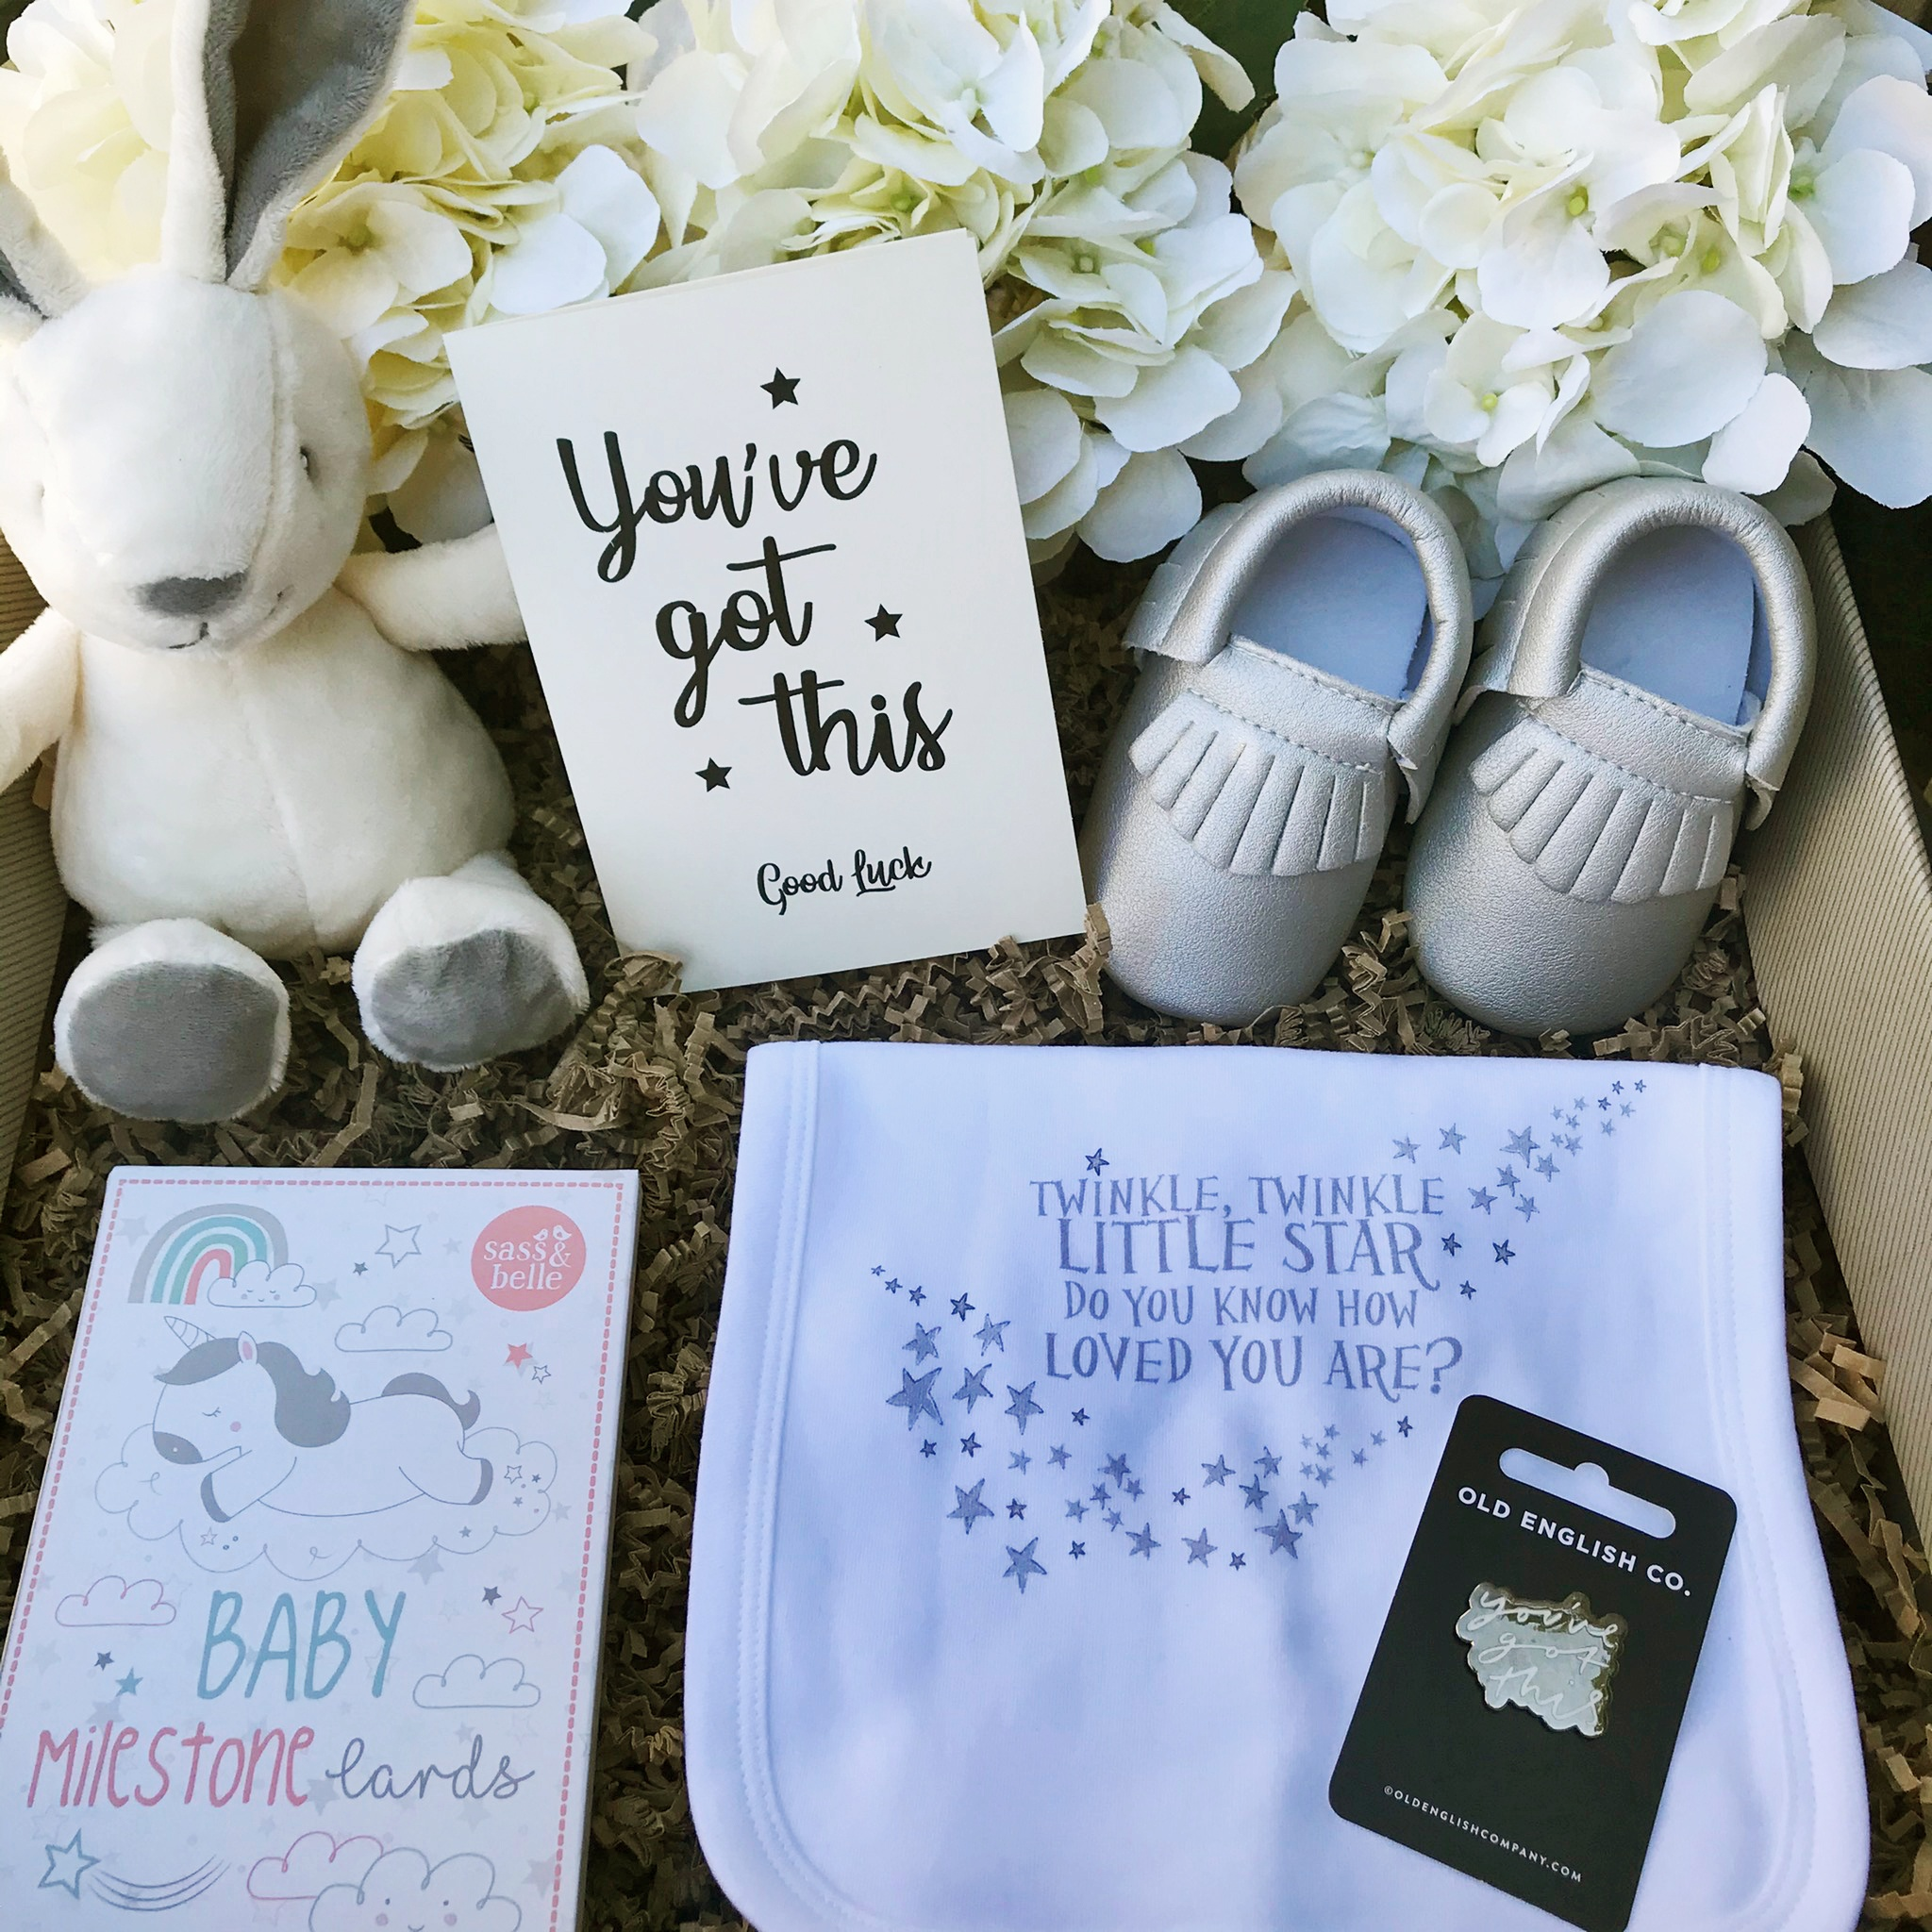 This Baby Gift Box is the perfect gift for a new born baby